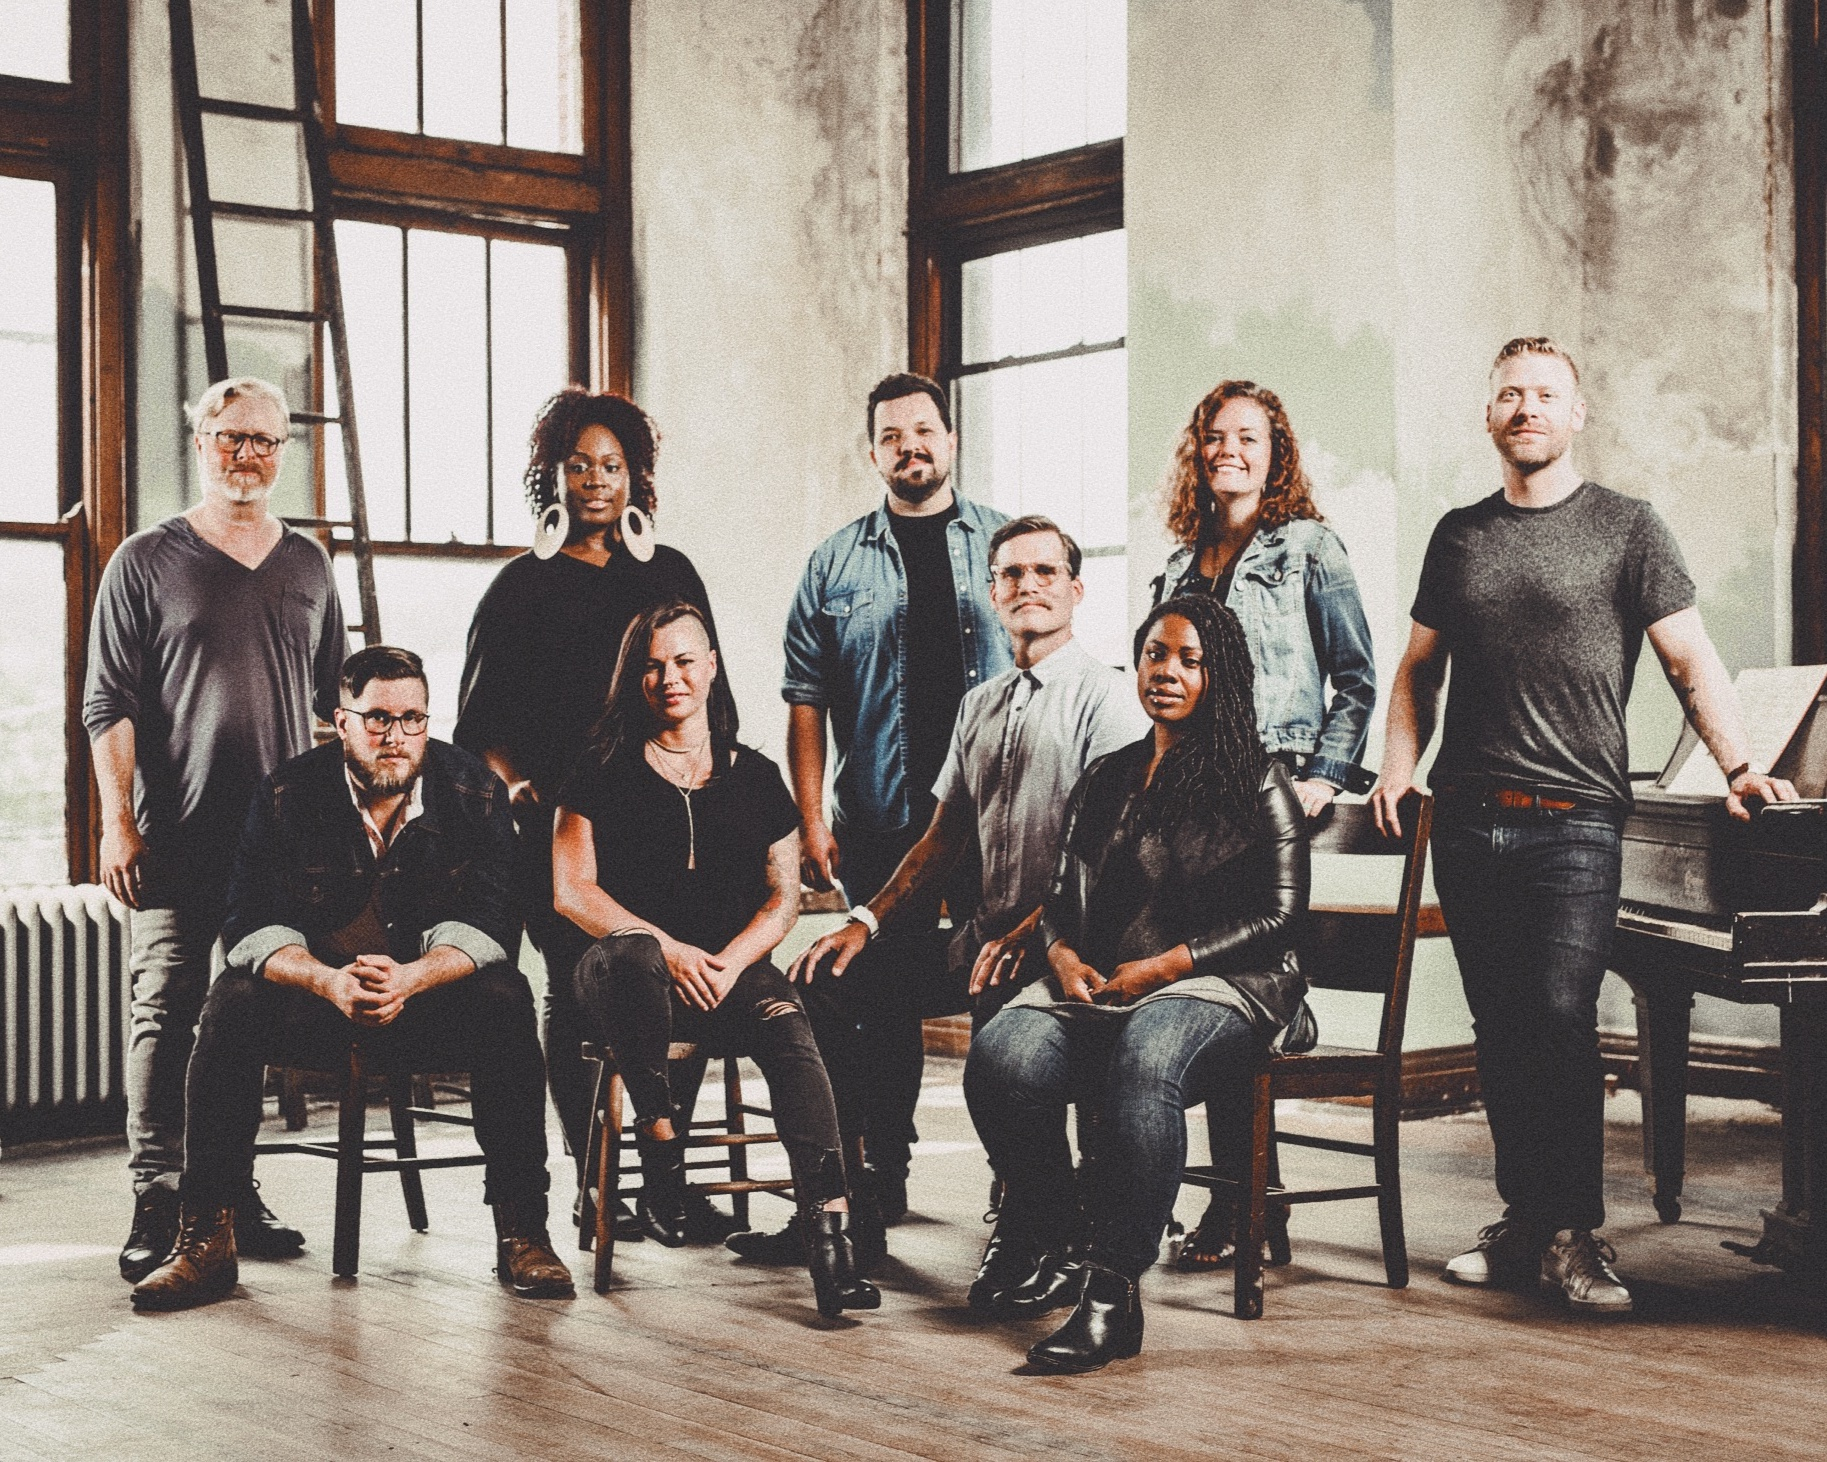 CROSSROADS MUSIC - Worship Collective of Crossroads Church(recently named the fastest growing church in America)